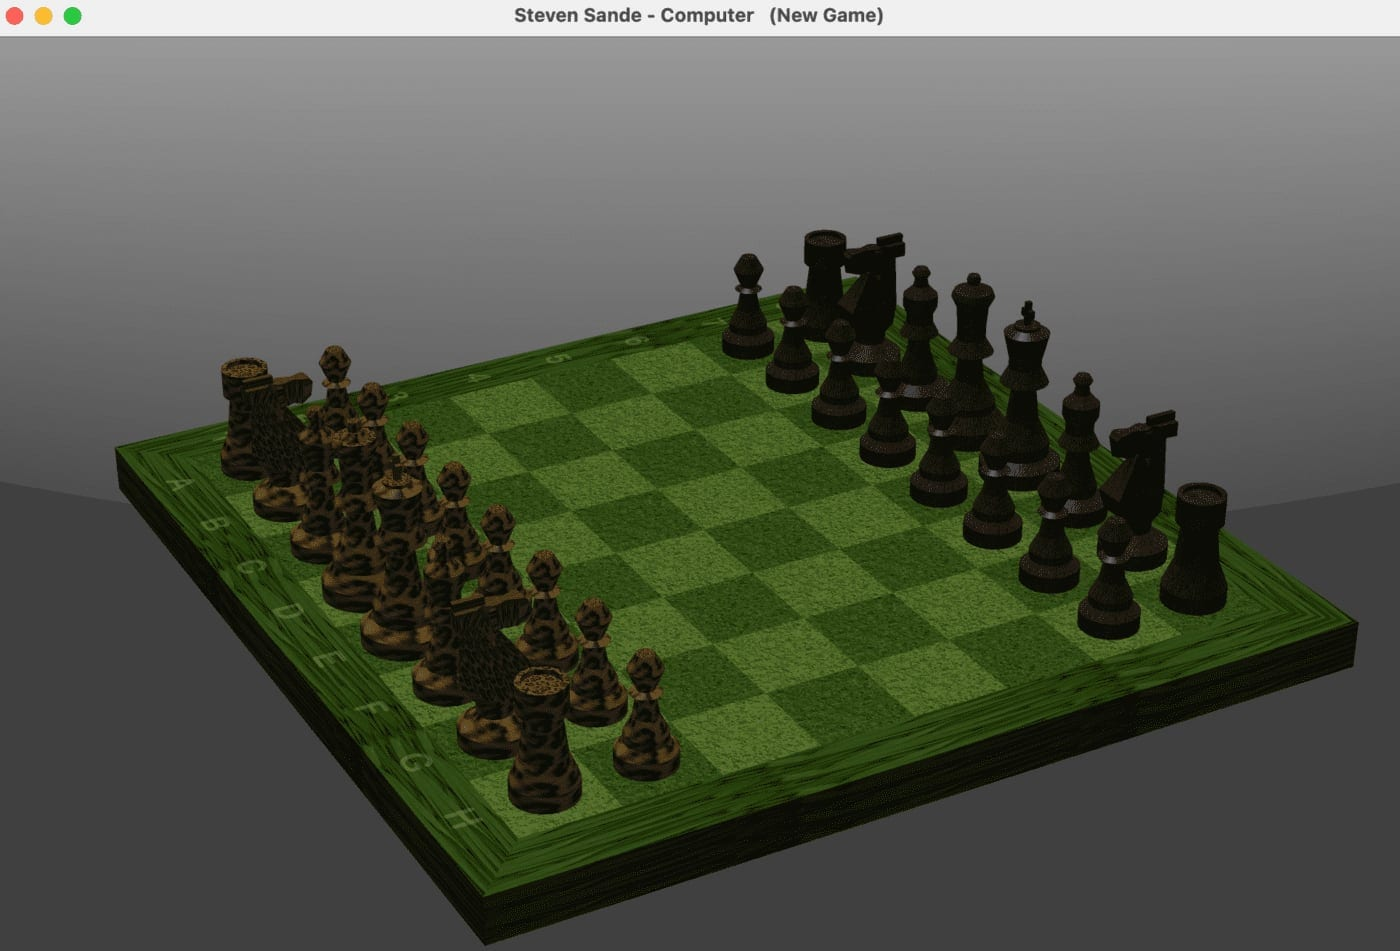 The macOS Chess game, with a grass board and furry pieces...